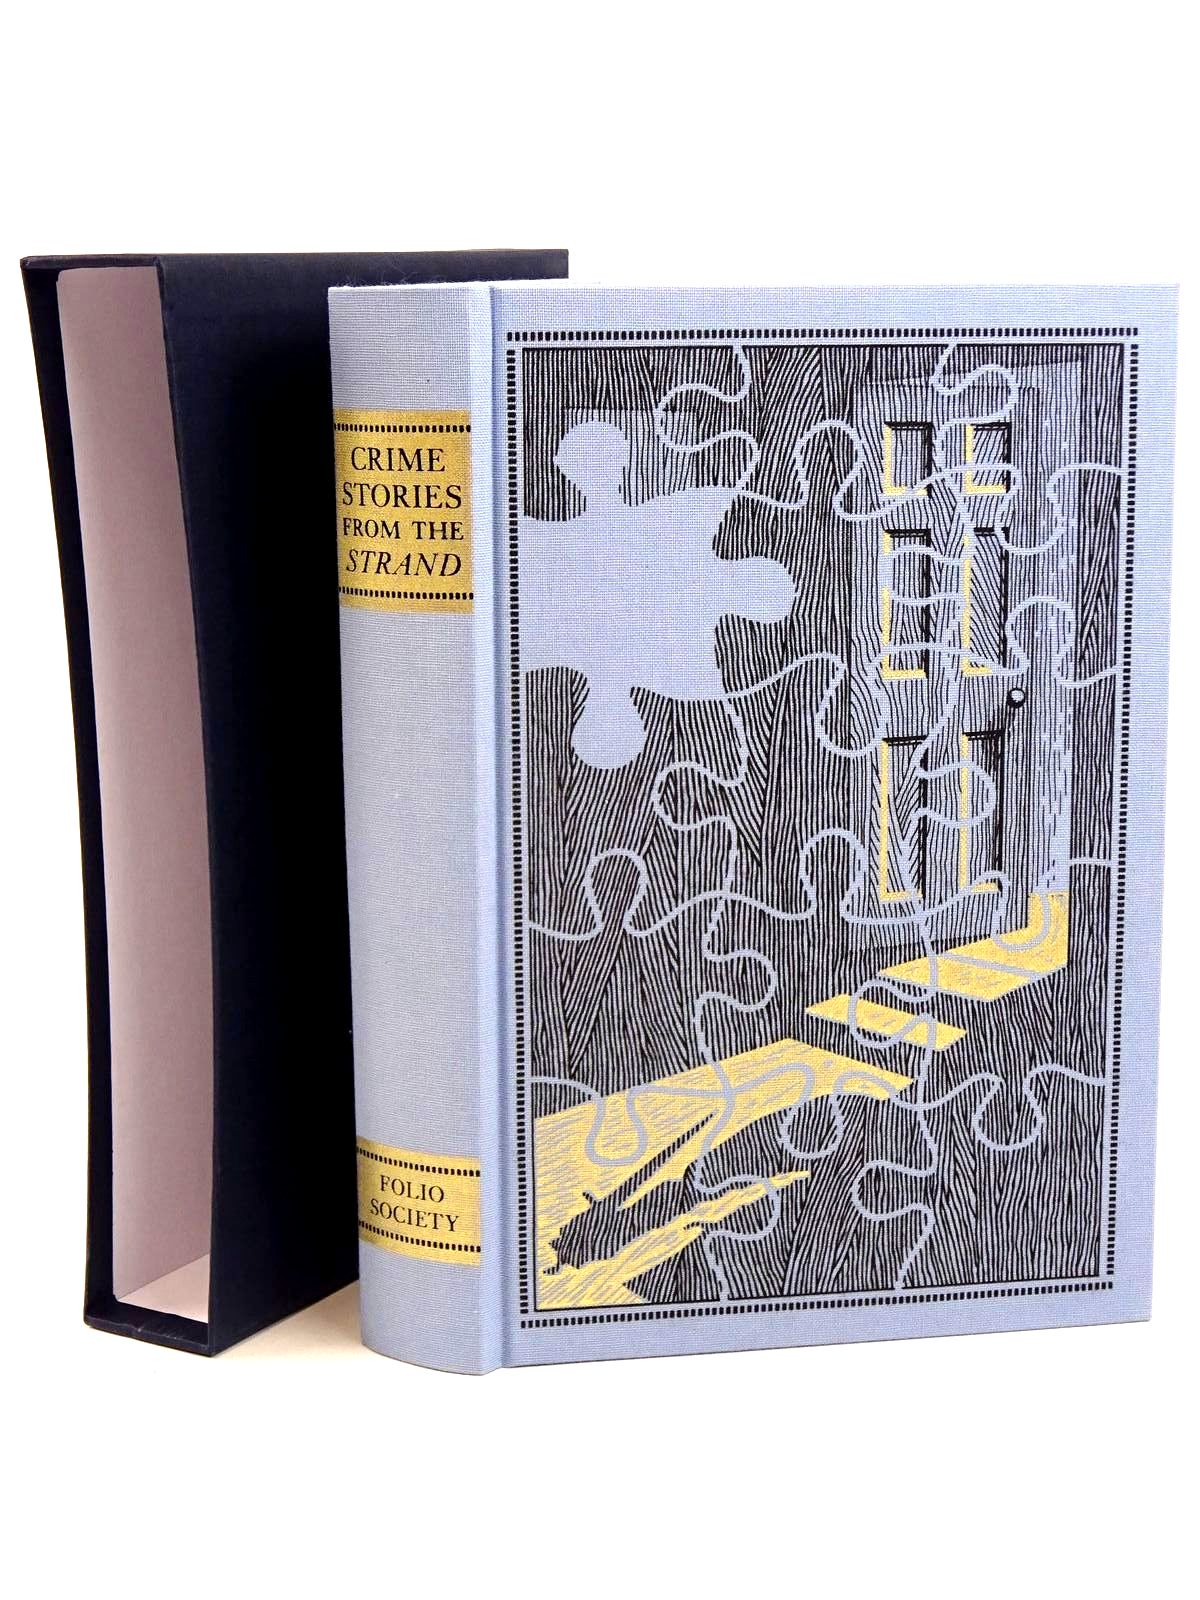 Photo of CRIME STORIES FROM THE 'STRAND' written by Beare, Geraldine<br />Keating, H.R.F. illustrated by Eccles, David published by Folio Society (STOCK CODE: 1318279)  for sale by Stella & Rose's Books